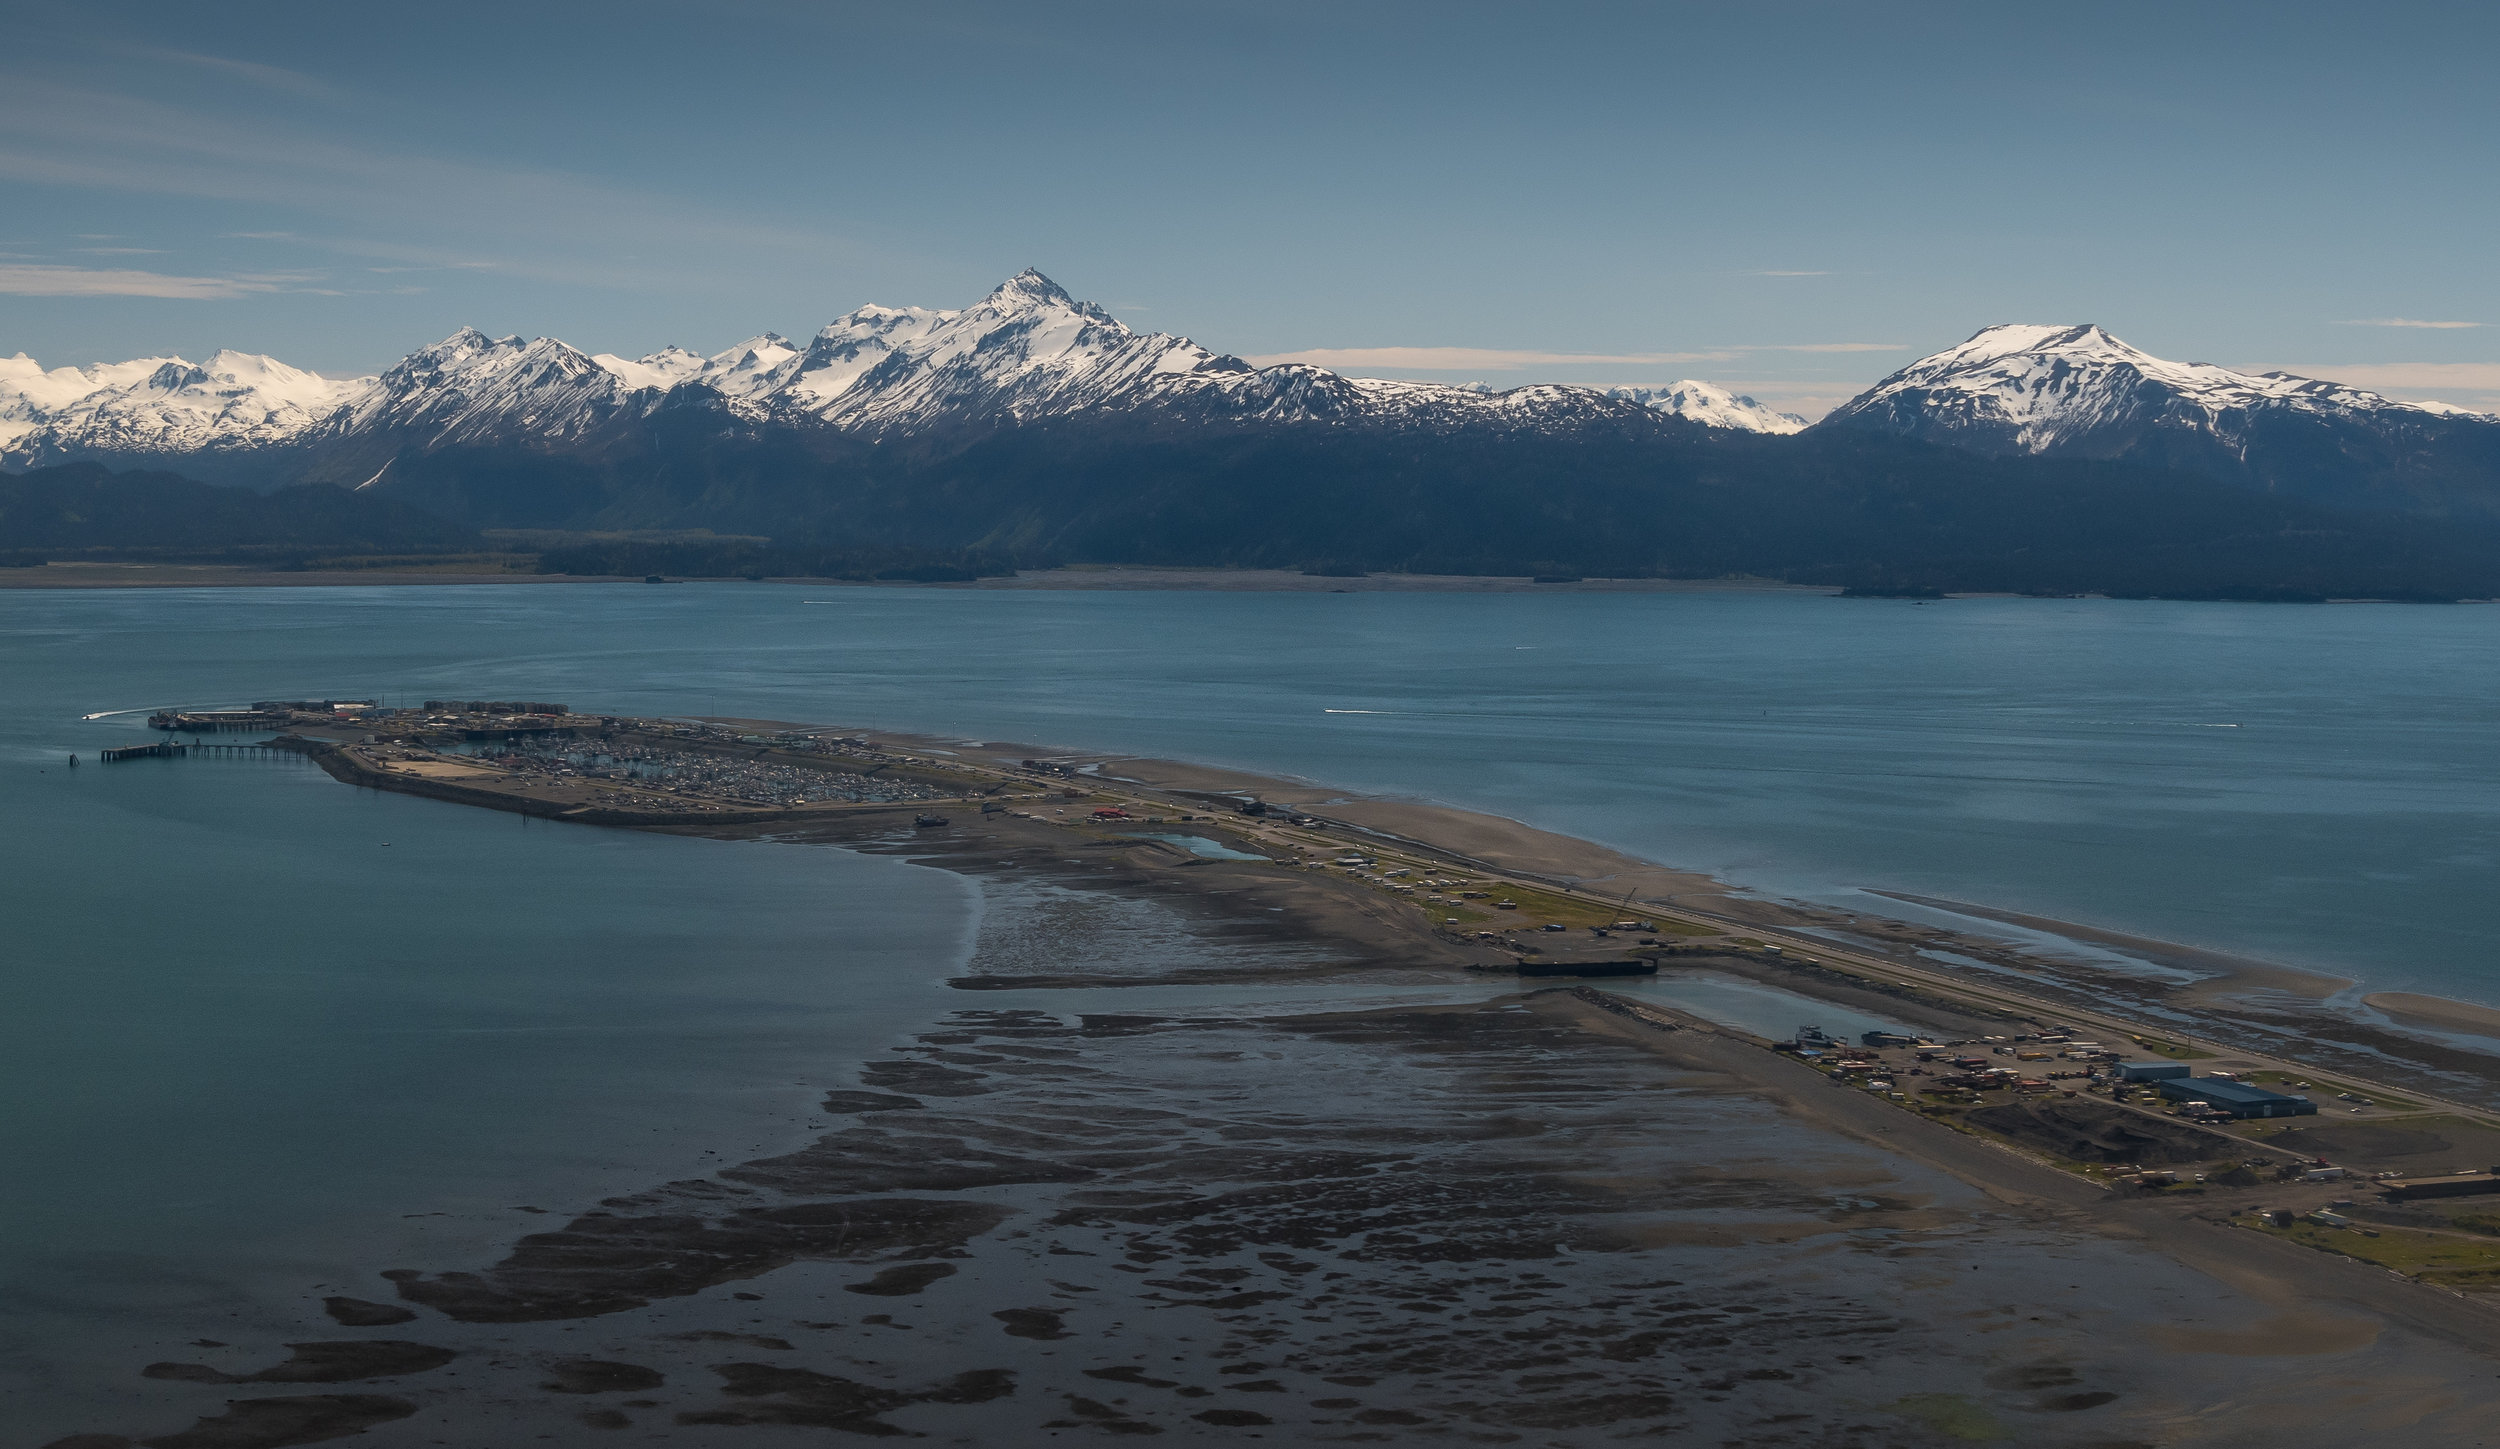 And while here, you will get to know the Homer Spit, formed by glacial moraine.